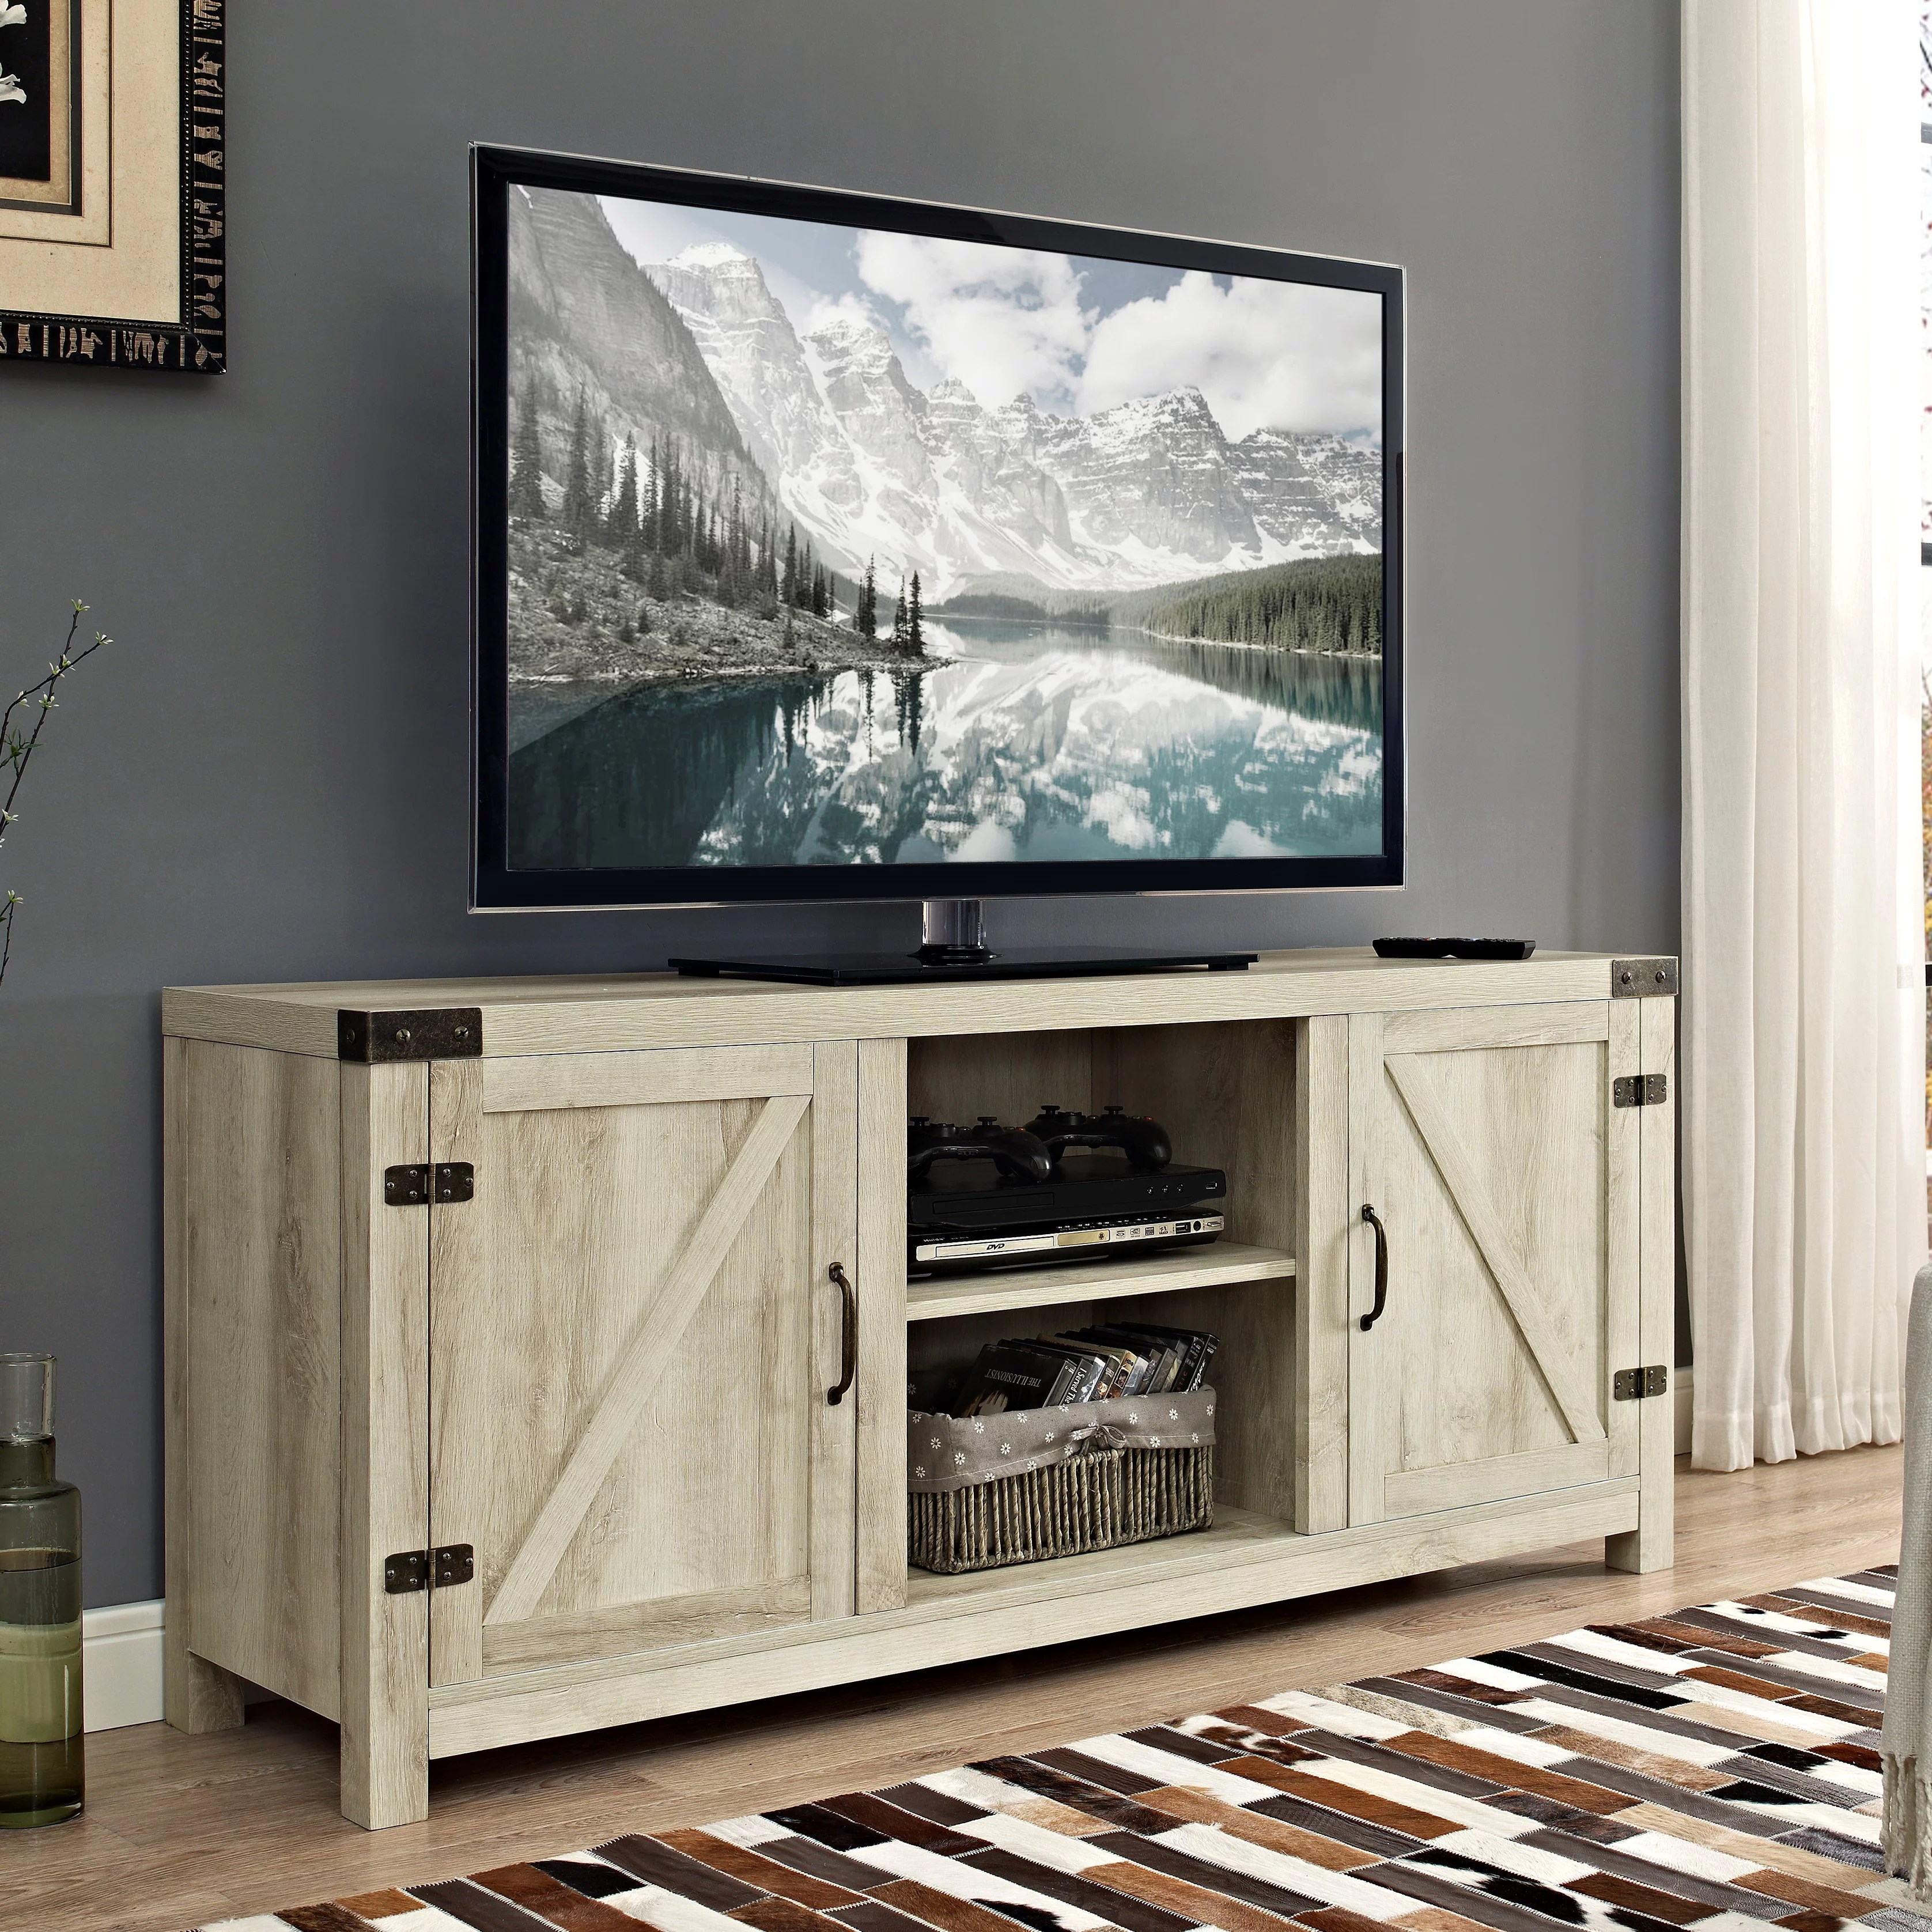 Barn Doors For Homes Manor Park Modern Farmhouse Barn Door Tv Stand For Tv S Up To 64